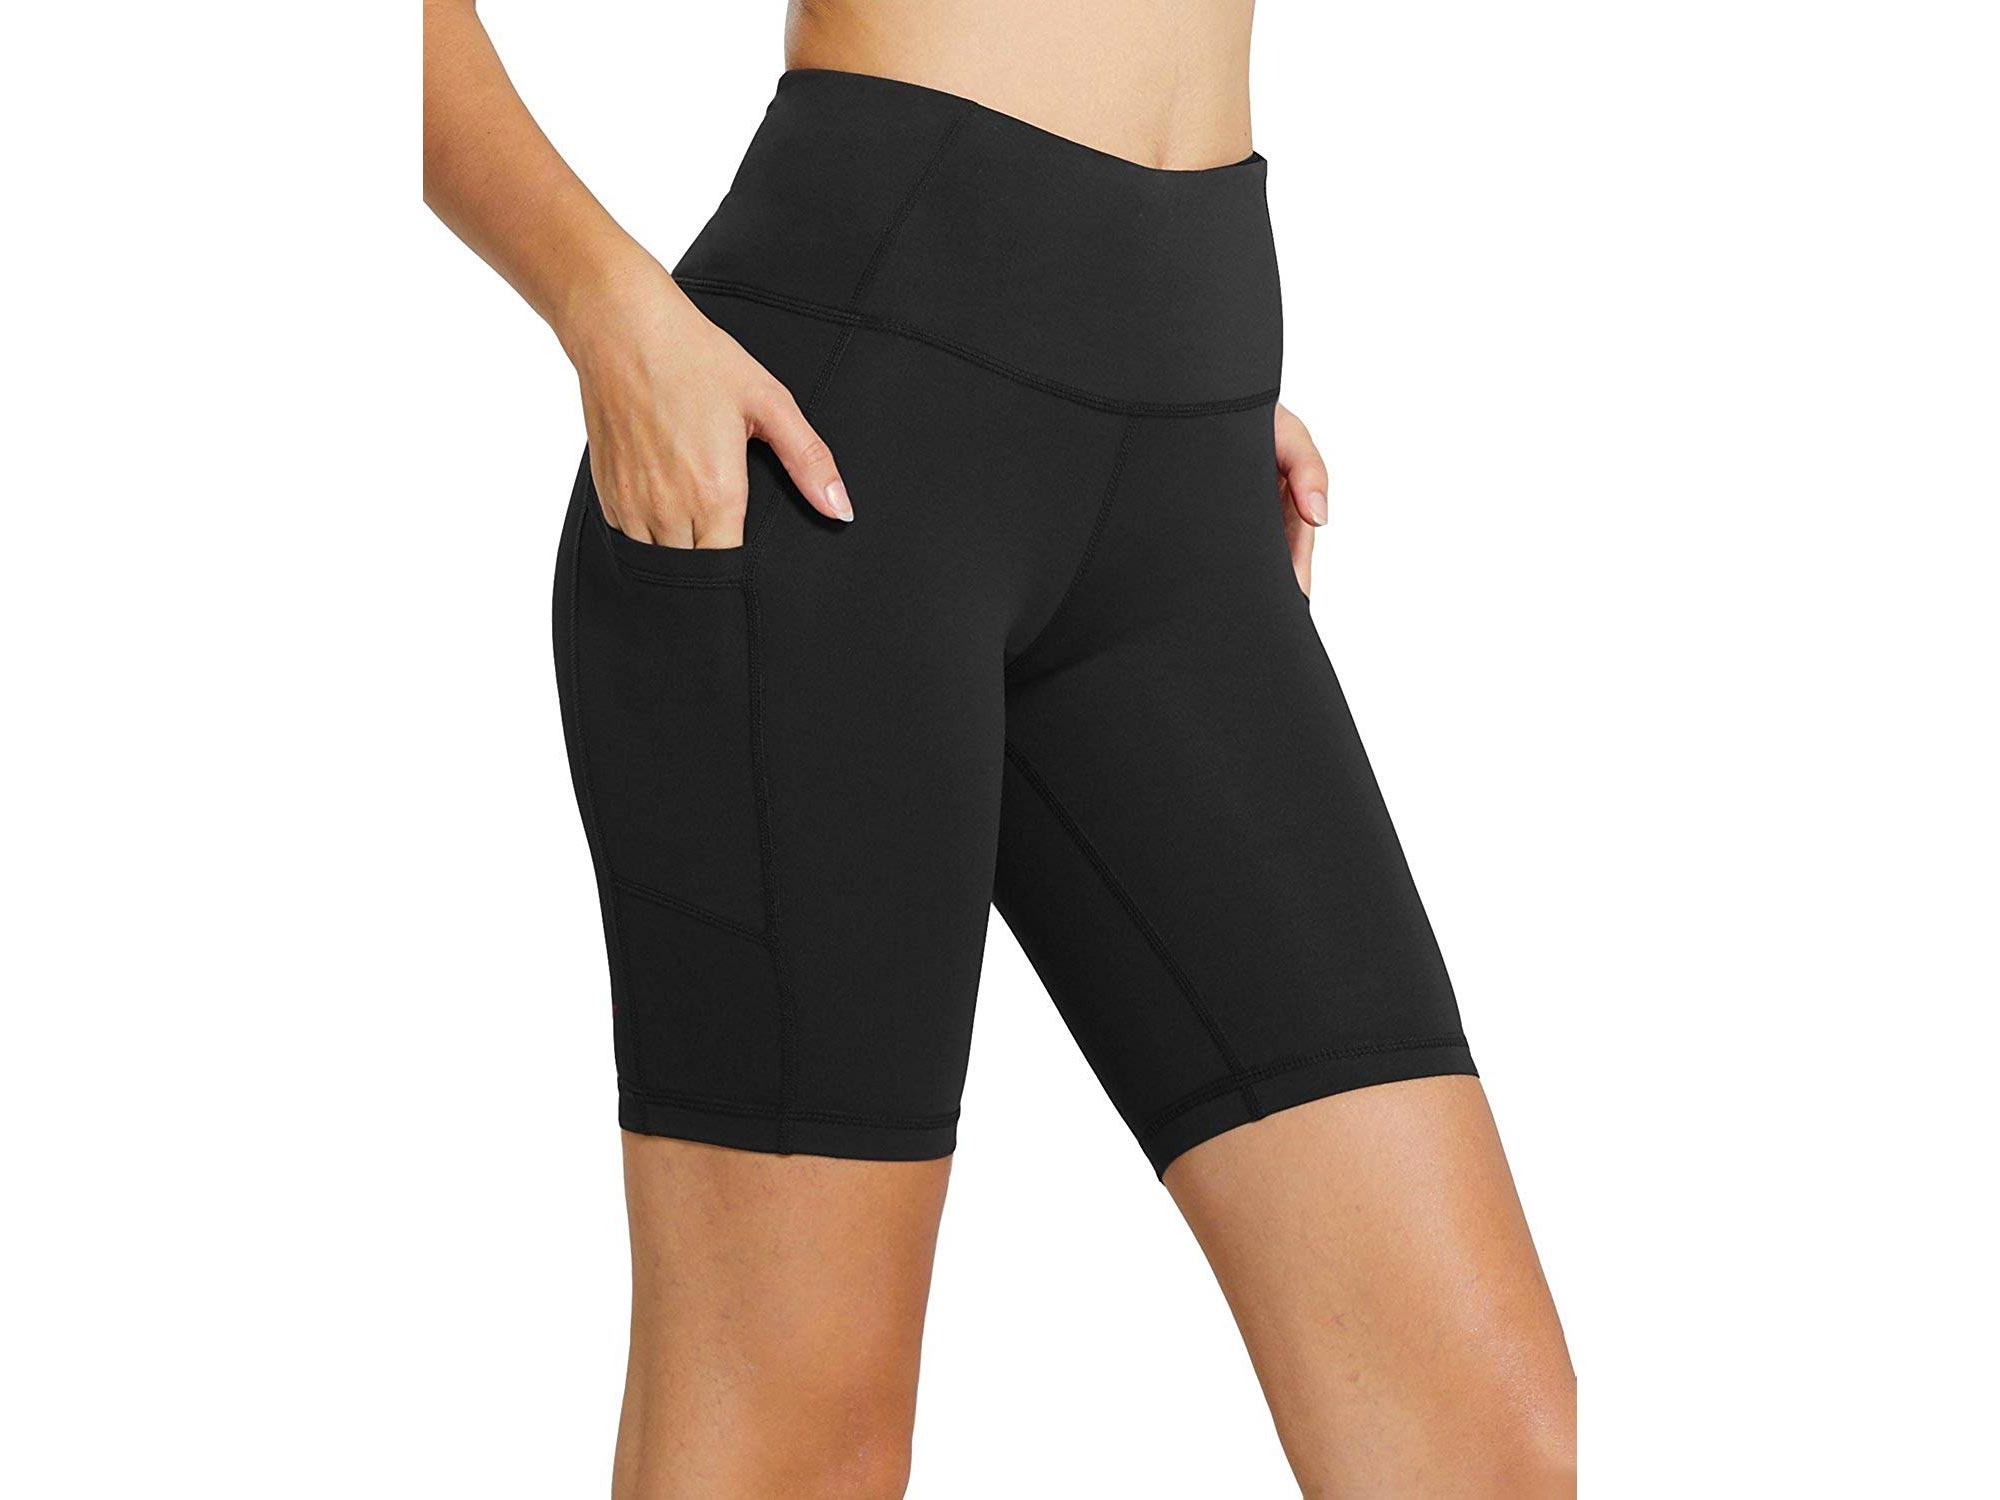 High Waist Workout Yoga Running Compression Exercise Shorts